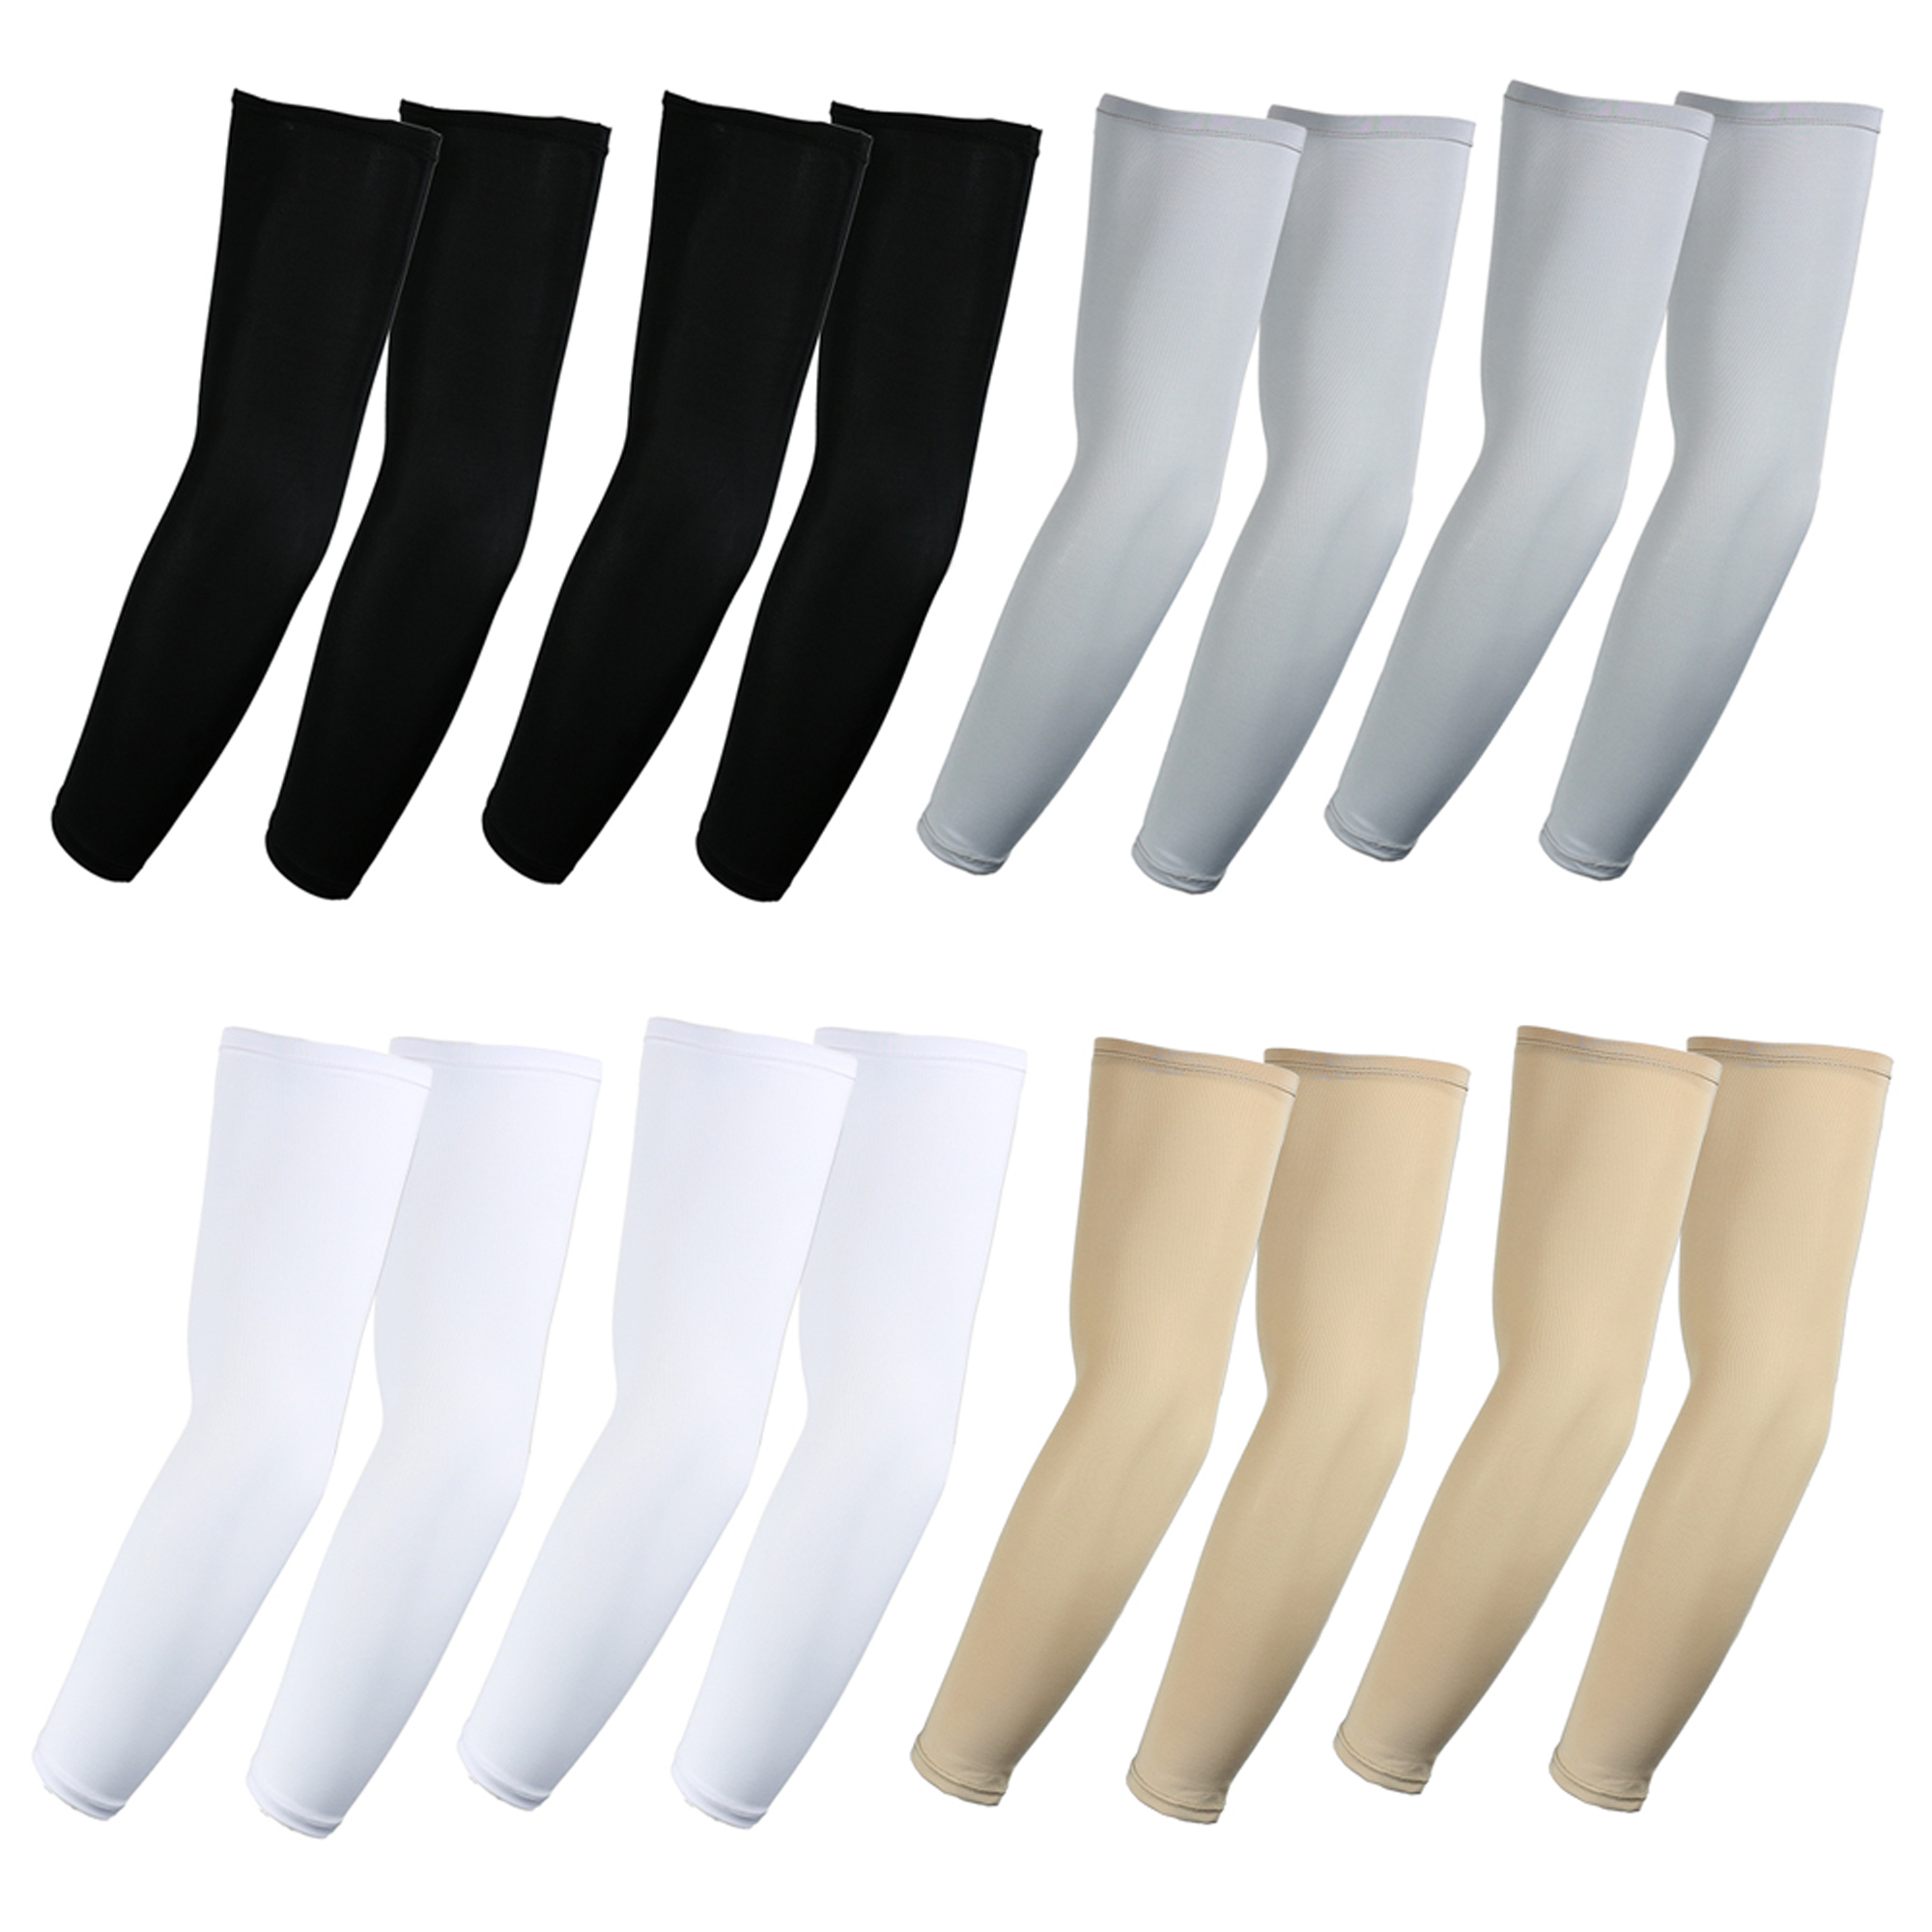 The Elixir Golf UV Protective Compression Arm Sleeves 8 Pairs Bundle Pack for Hiking Cycling Golf and Outdoor Activities, 2 Pairs Eash White, Black, Gray, Beige